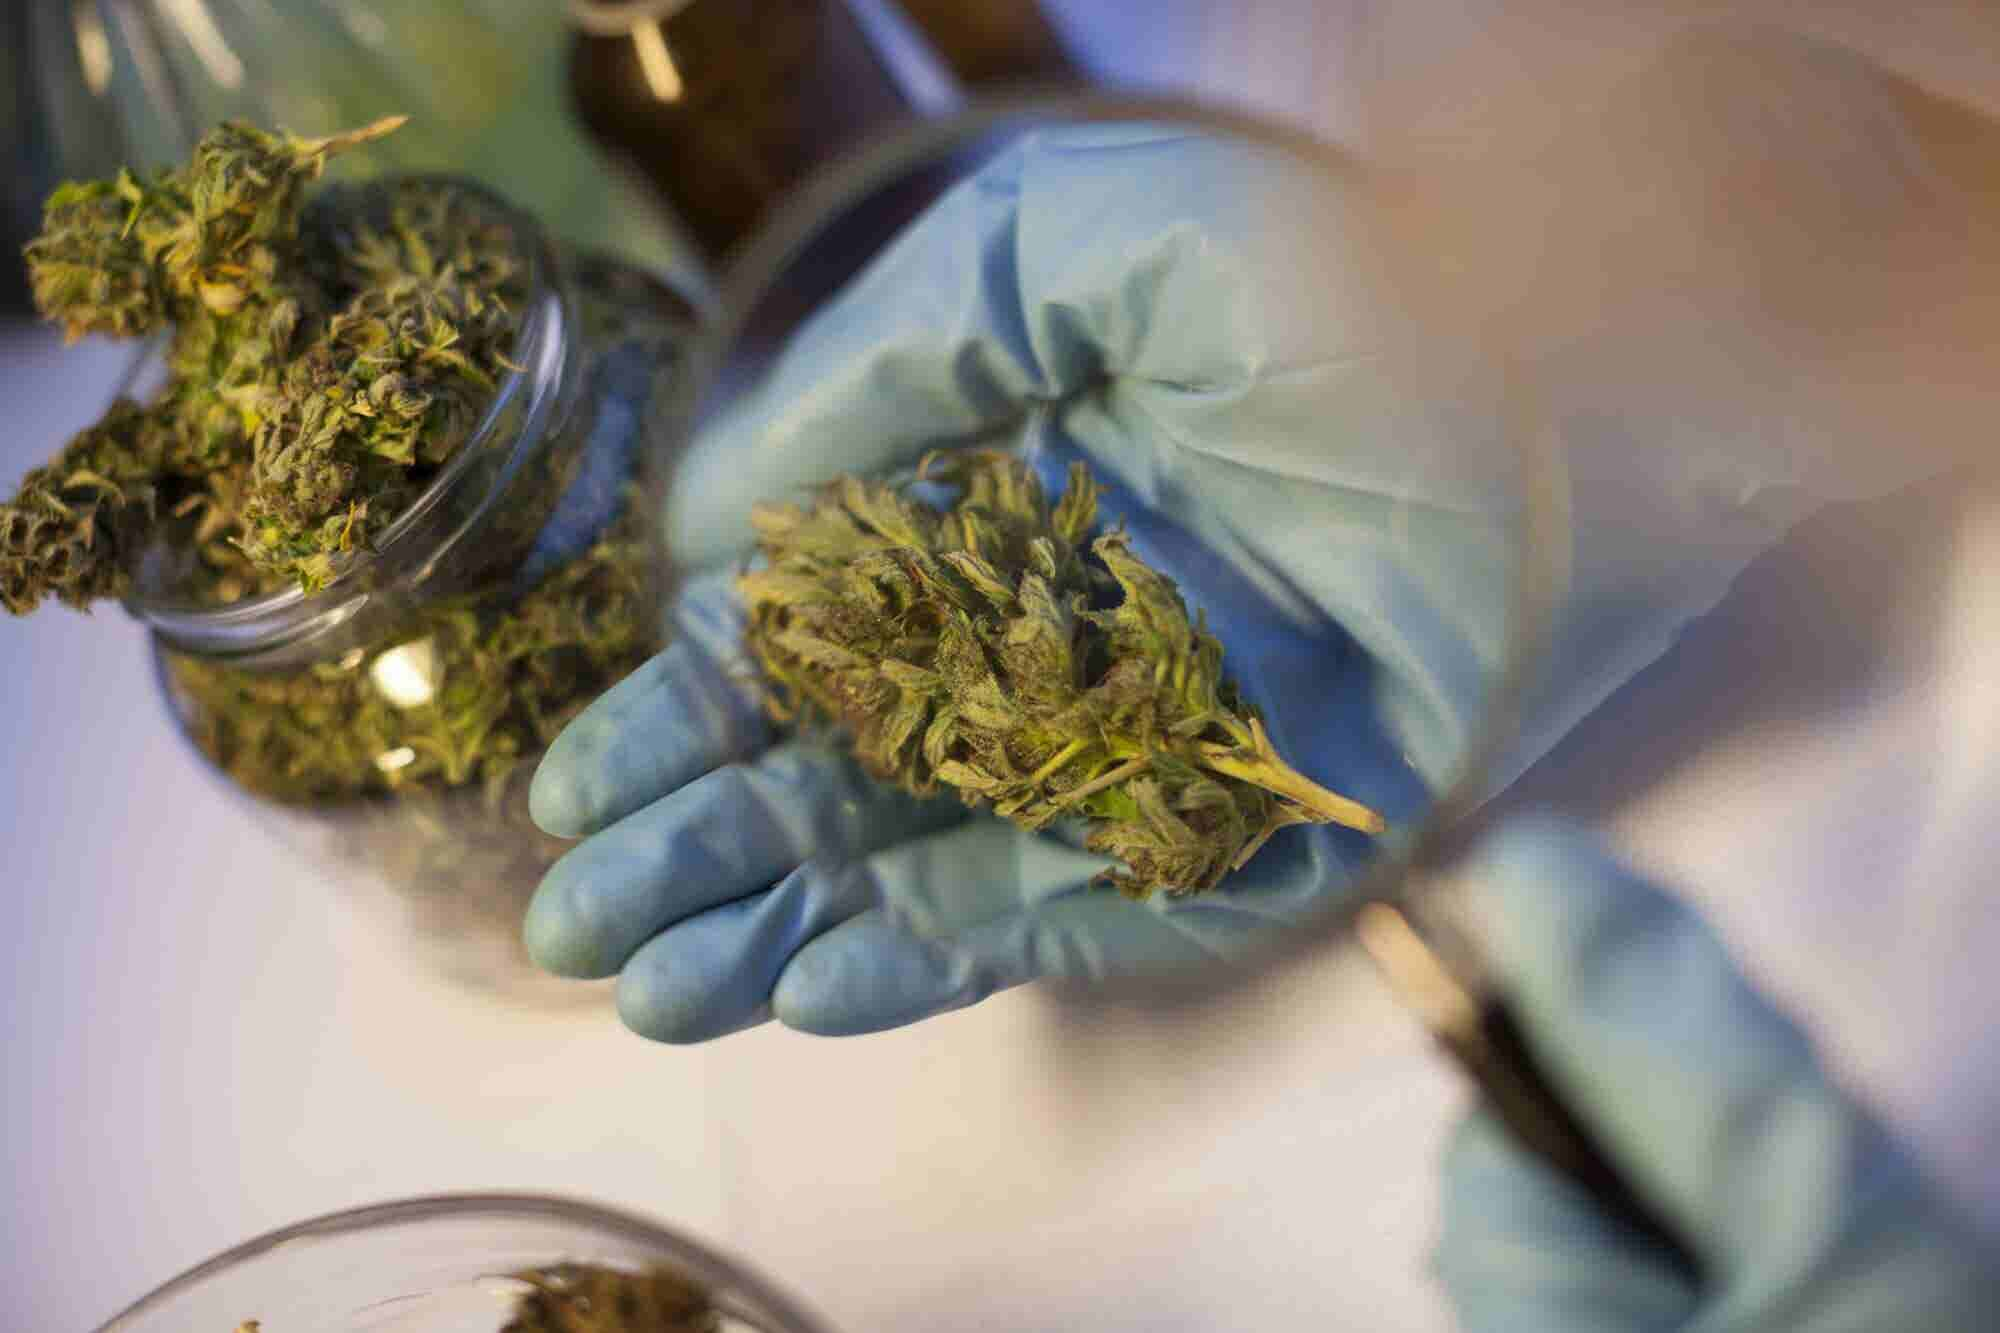 Marijuana the Feds Allow for Research Is More Like Hemp Than Real-Life Pot